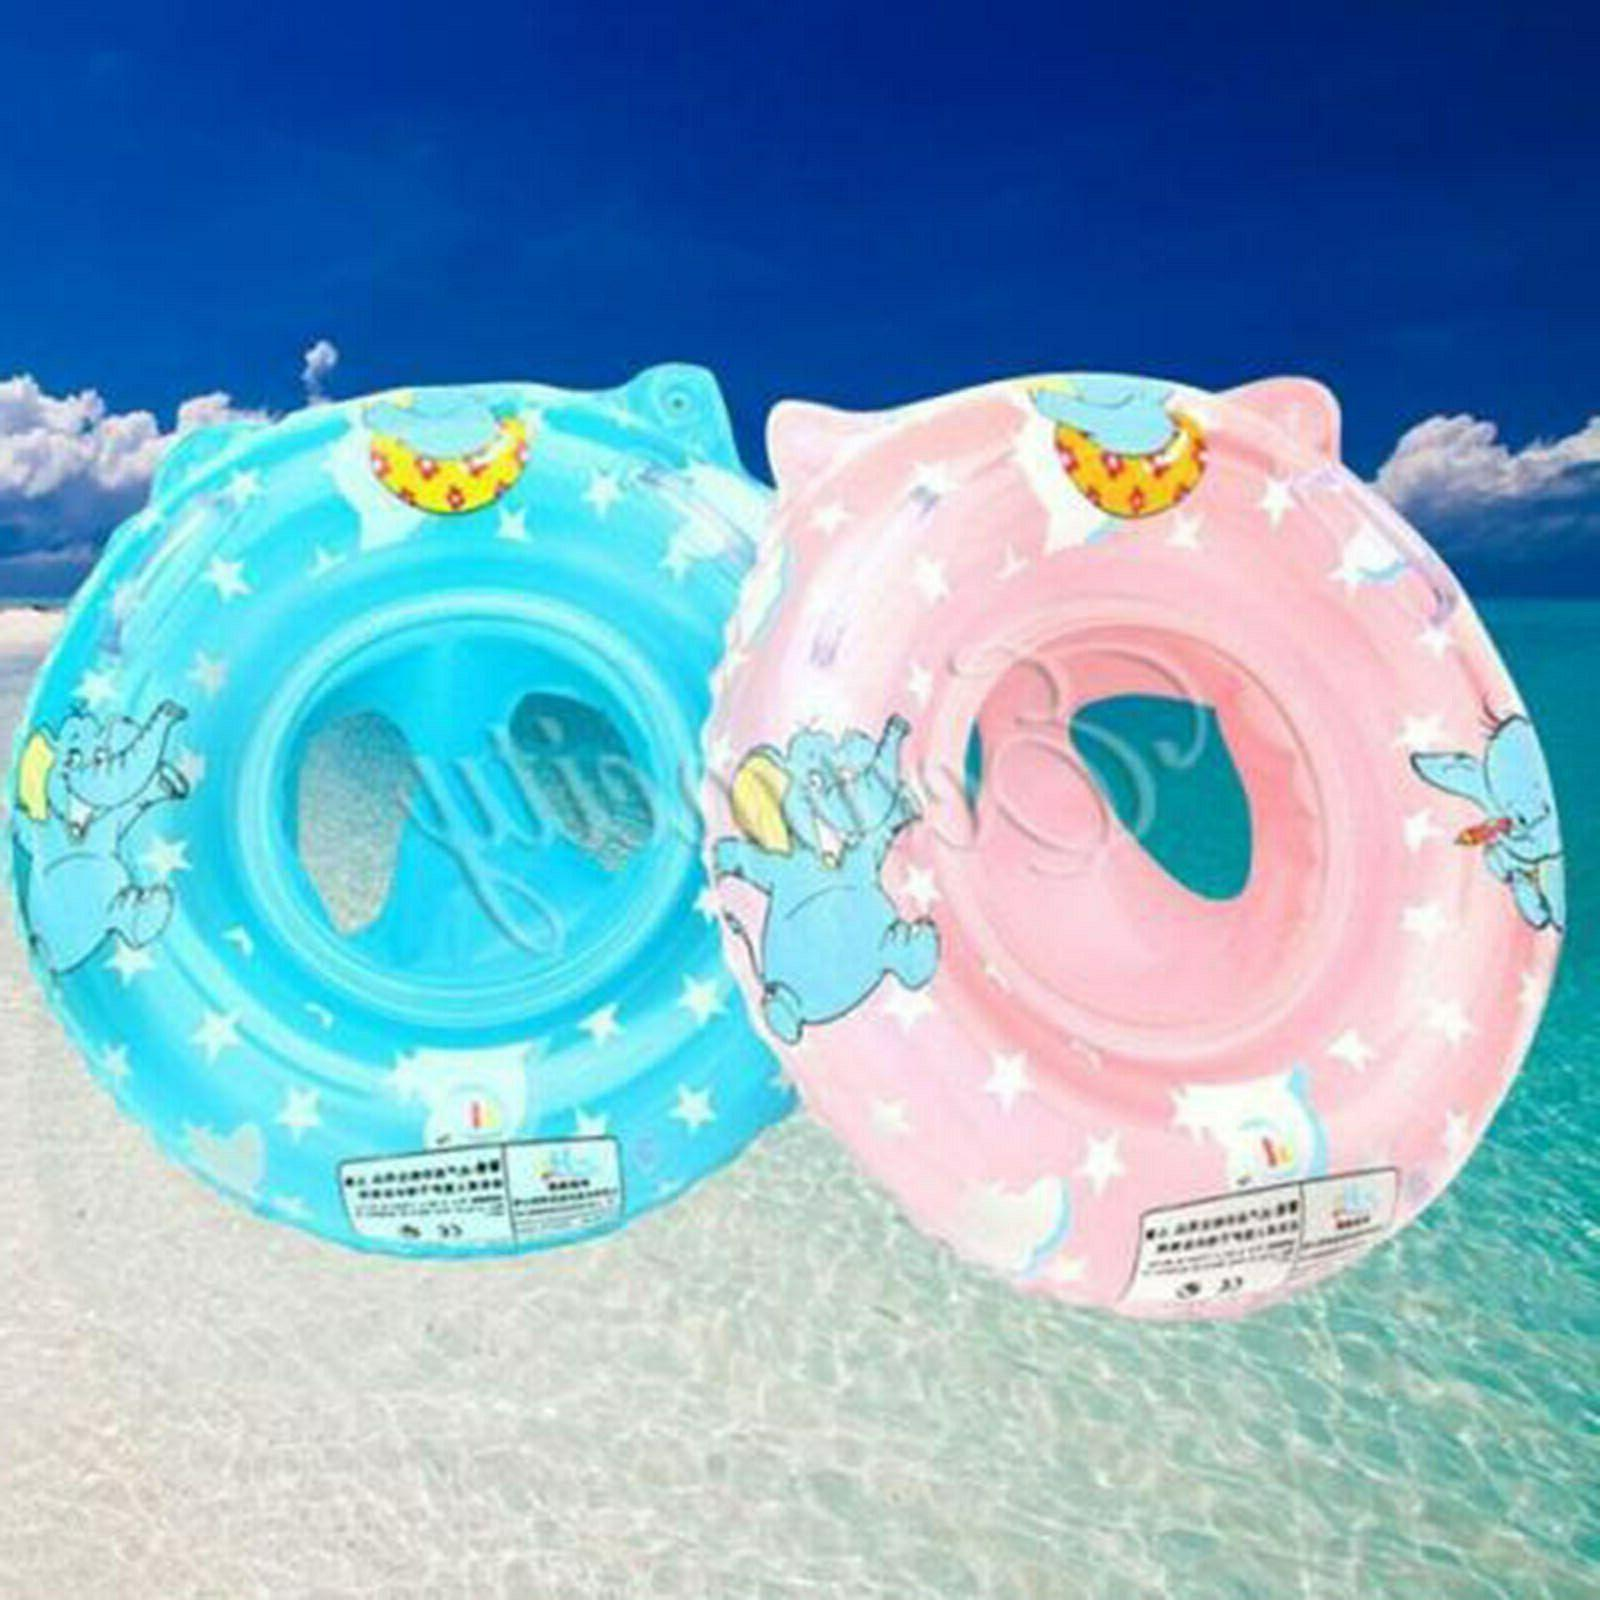 New Baby Child Pool Water Toddler Safety Aid Ring